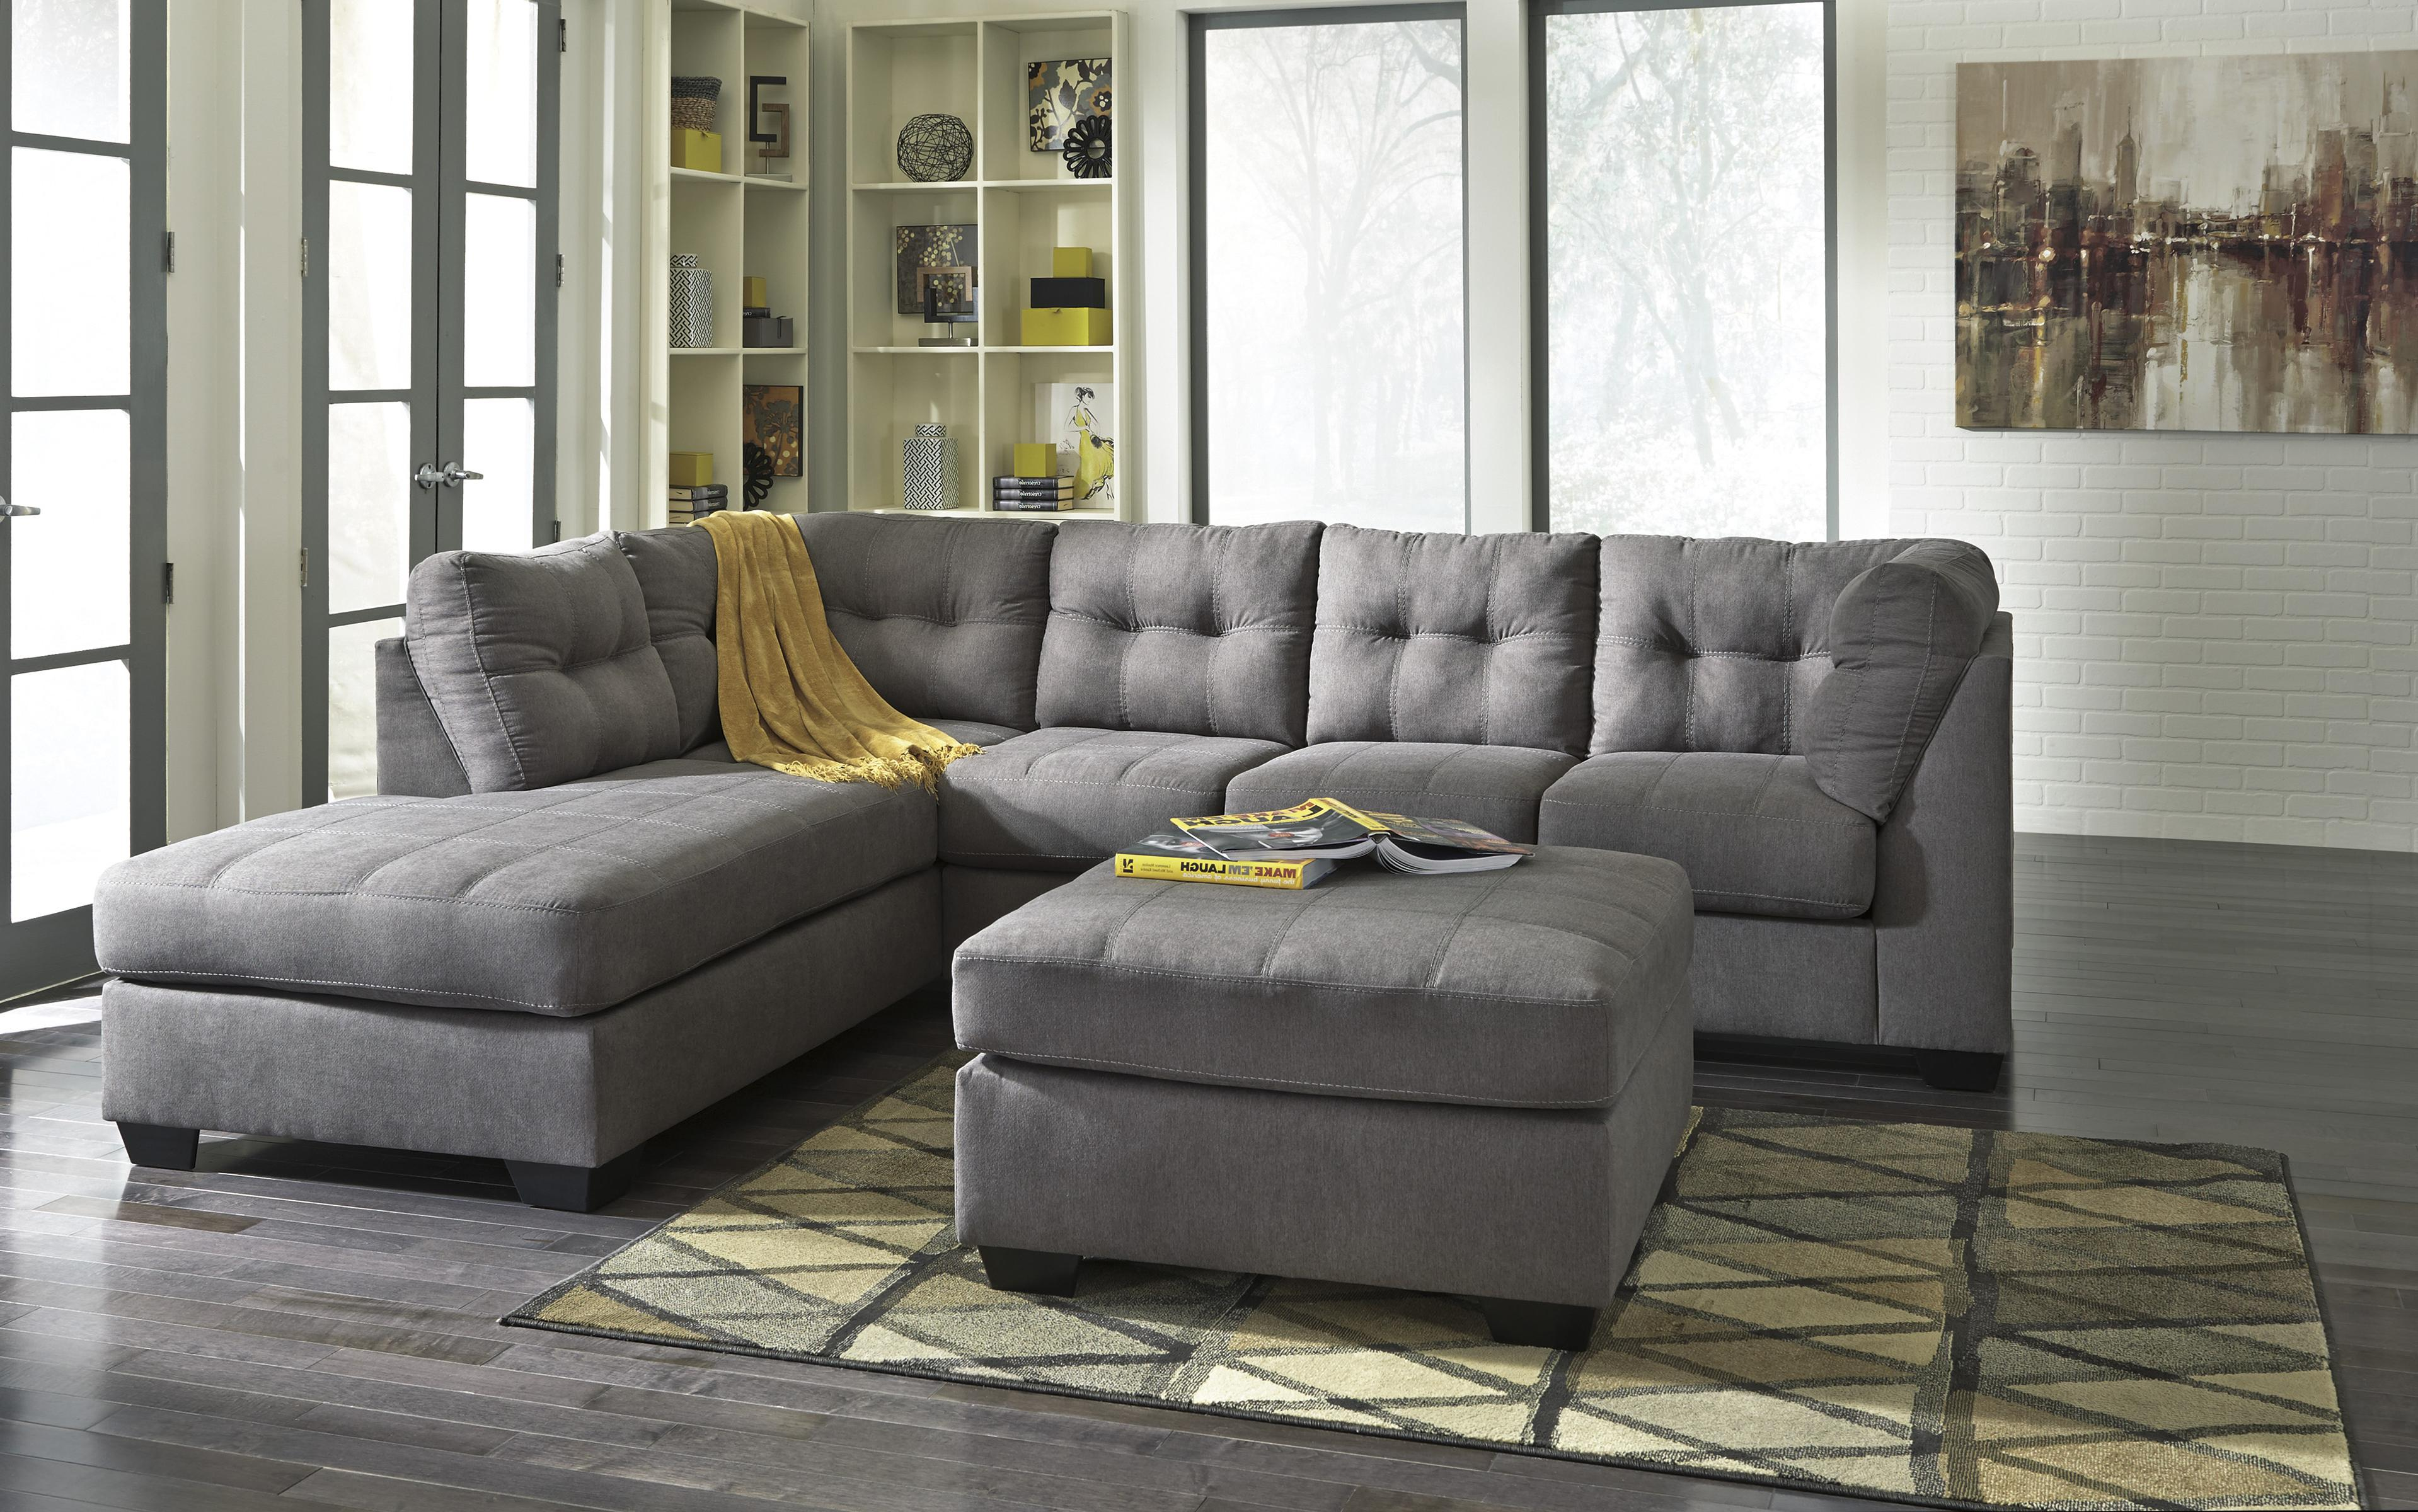 Maier - Charcoal Stationary Living Room Group by Benchcraft at Northeast Factory Direct